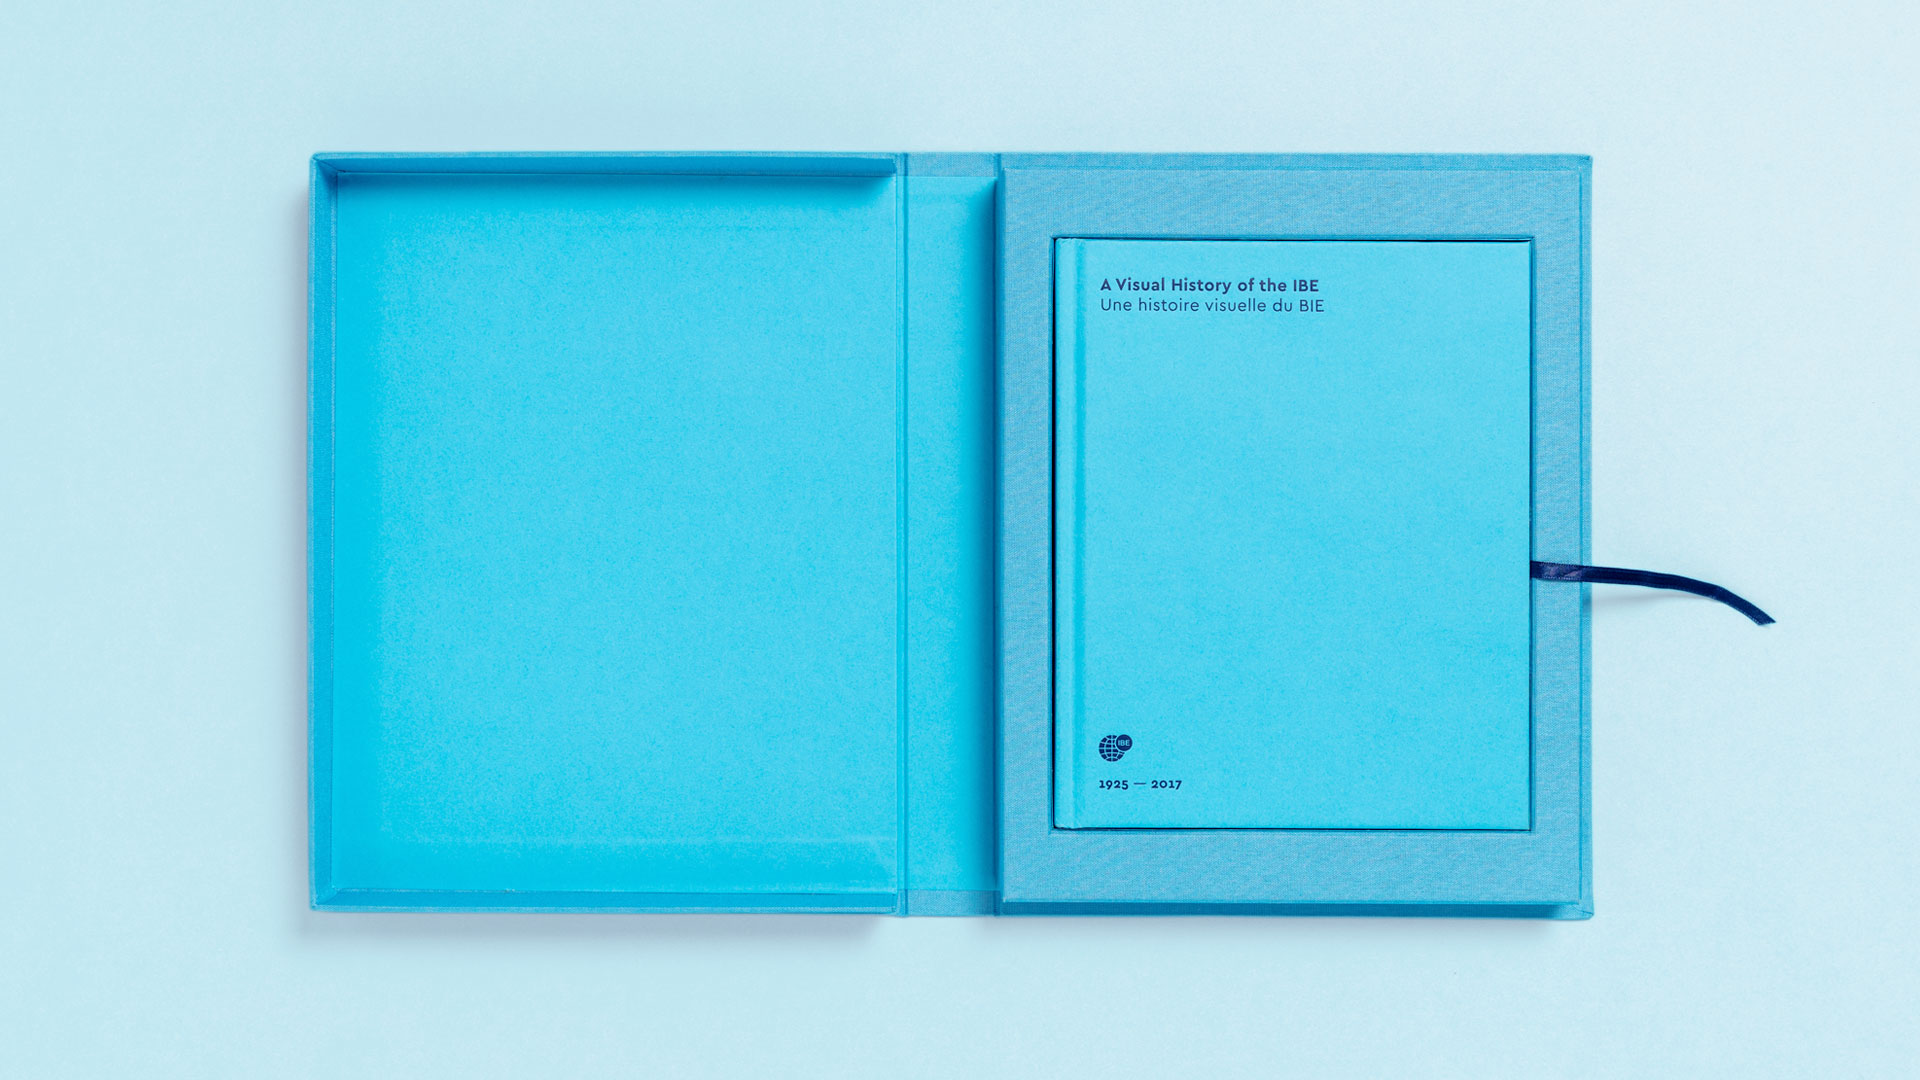 Packaging abierto libro A Visual History of the IBE